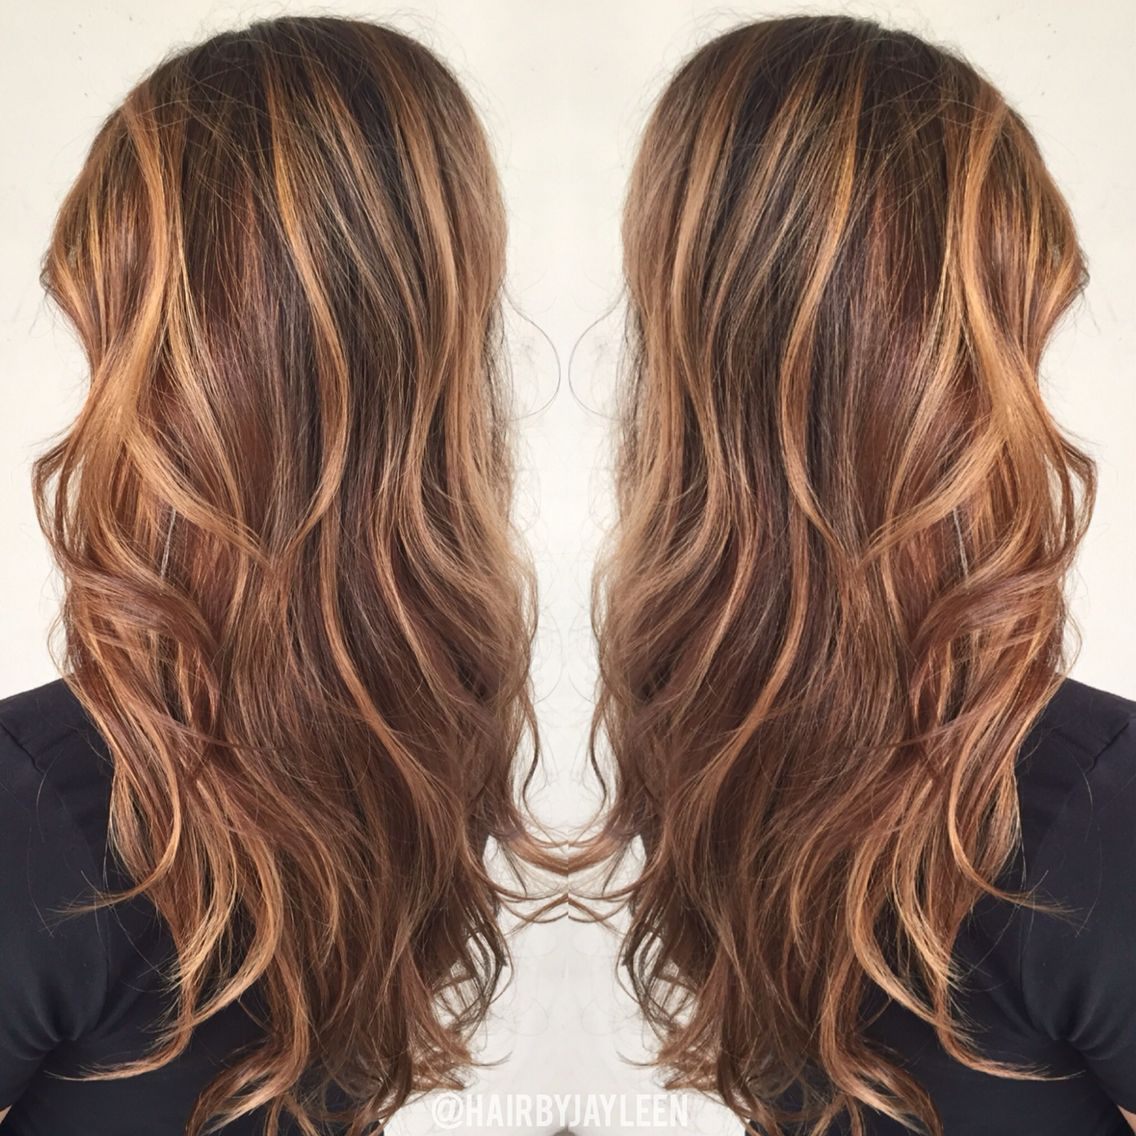 Brown hair color, caramel highlights, caramel balayage ...